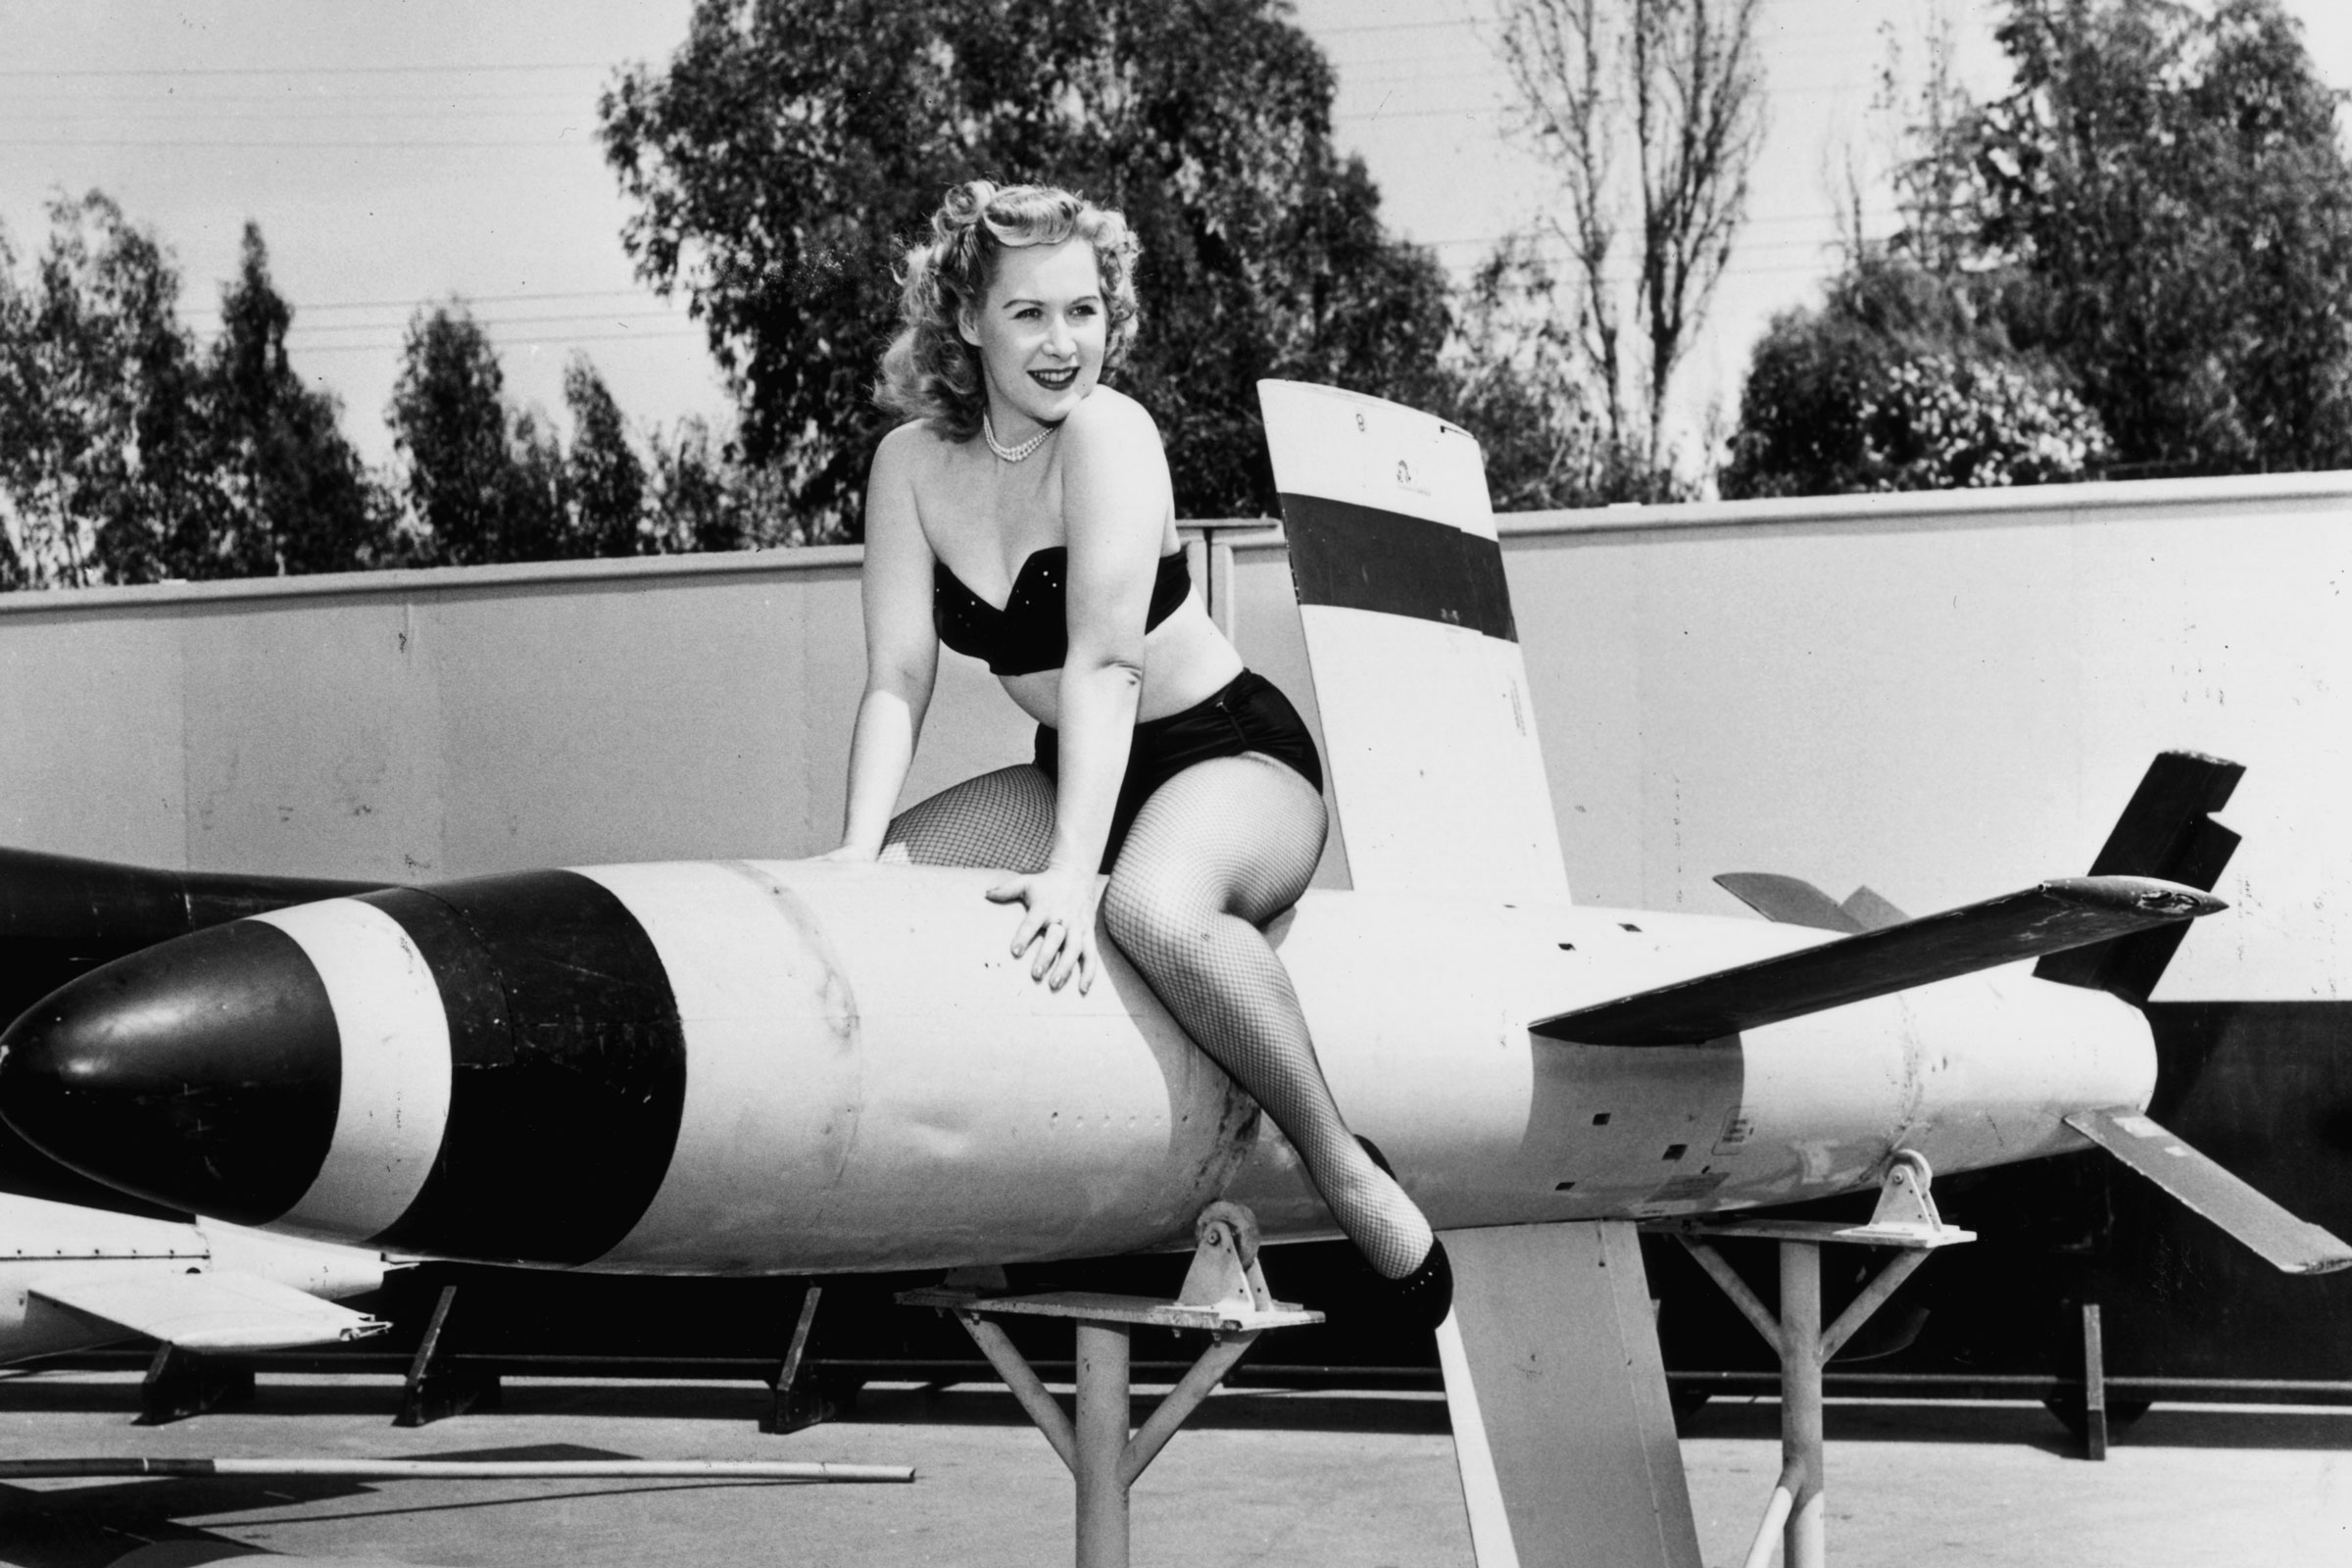 Joy Healy, a white, blond, thin woman sits on top of a missile while wearing a bikini